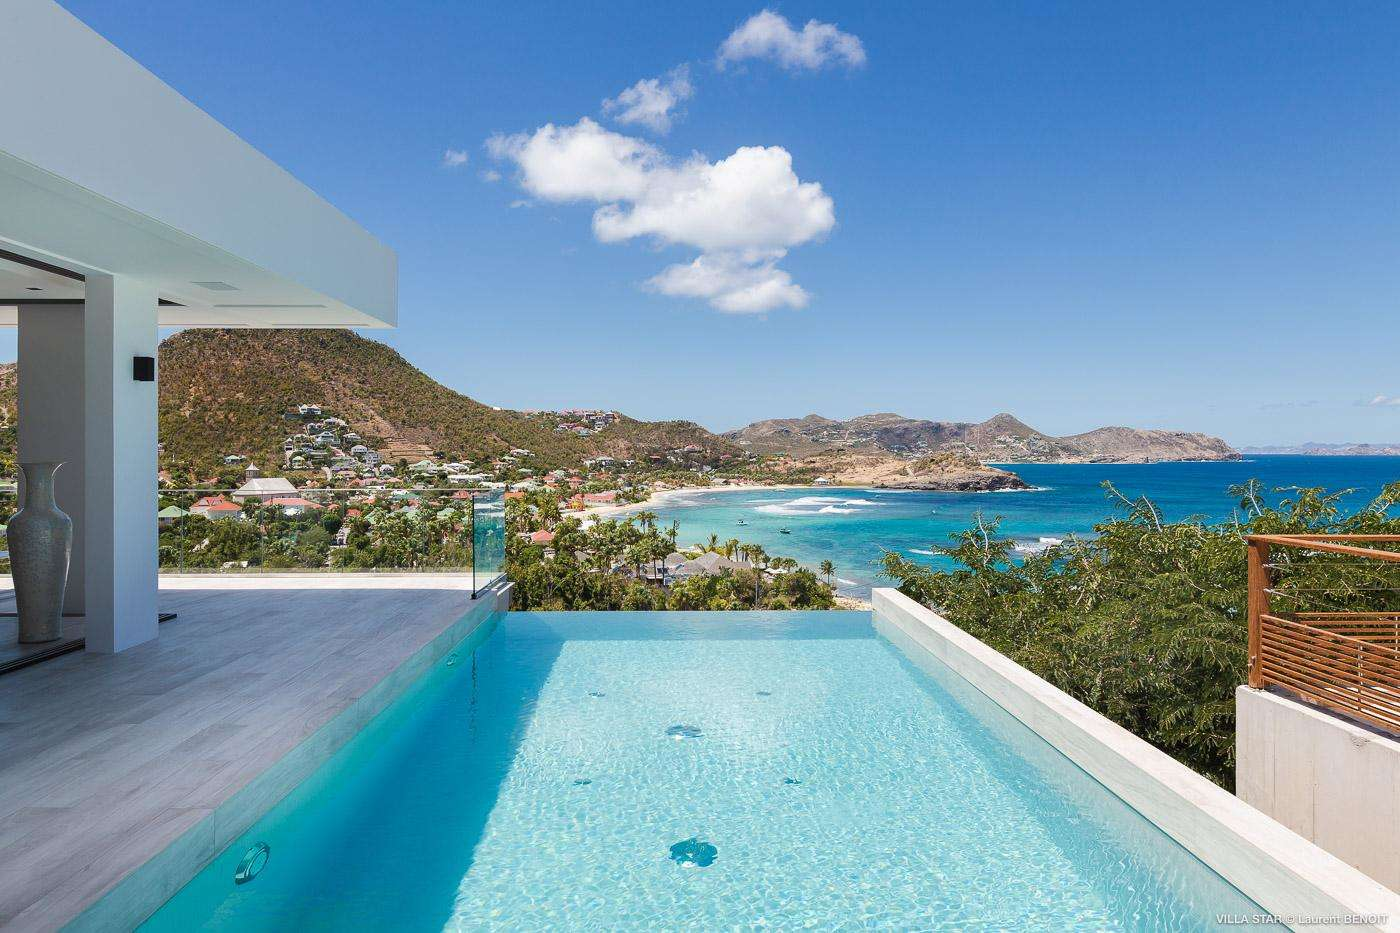 Luxury villa rentals caribbean - St barthelemy - Lorient - No location 4 - Star - Image 1/18